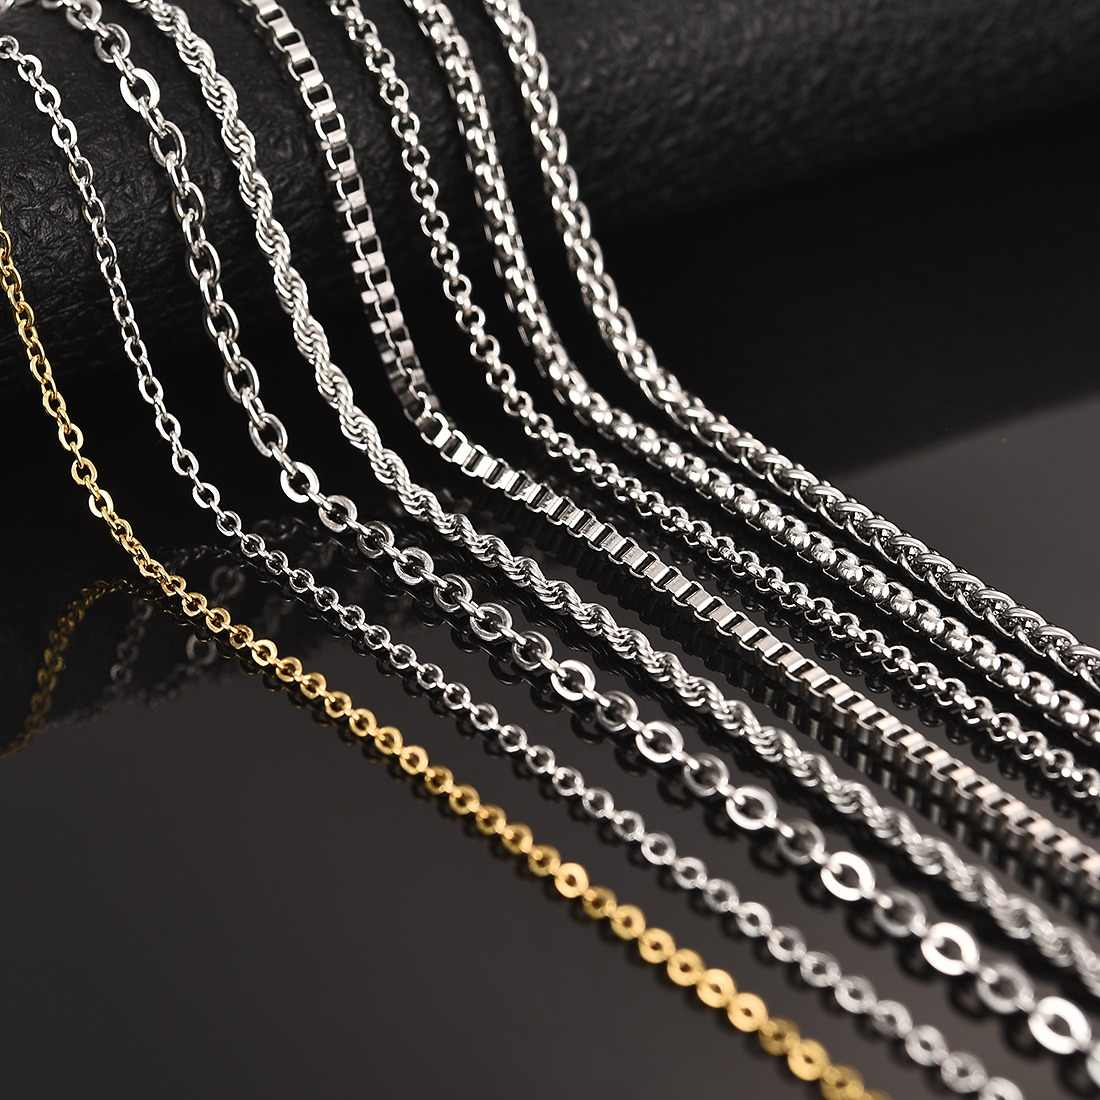 YAKAMOZ Fashion Gold Silver Chain Titanium Stainless Steel Necklace For Women Men DIY Jewelry Choker 50cm 60cm